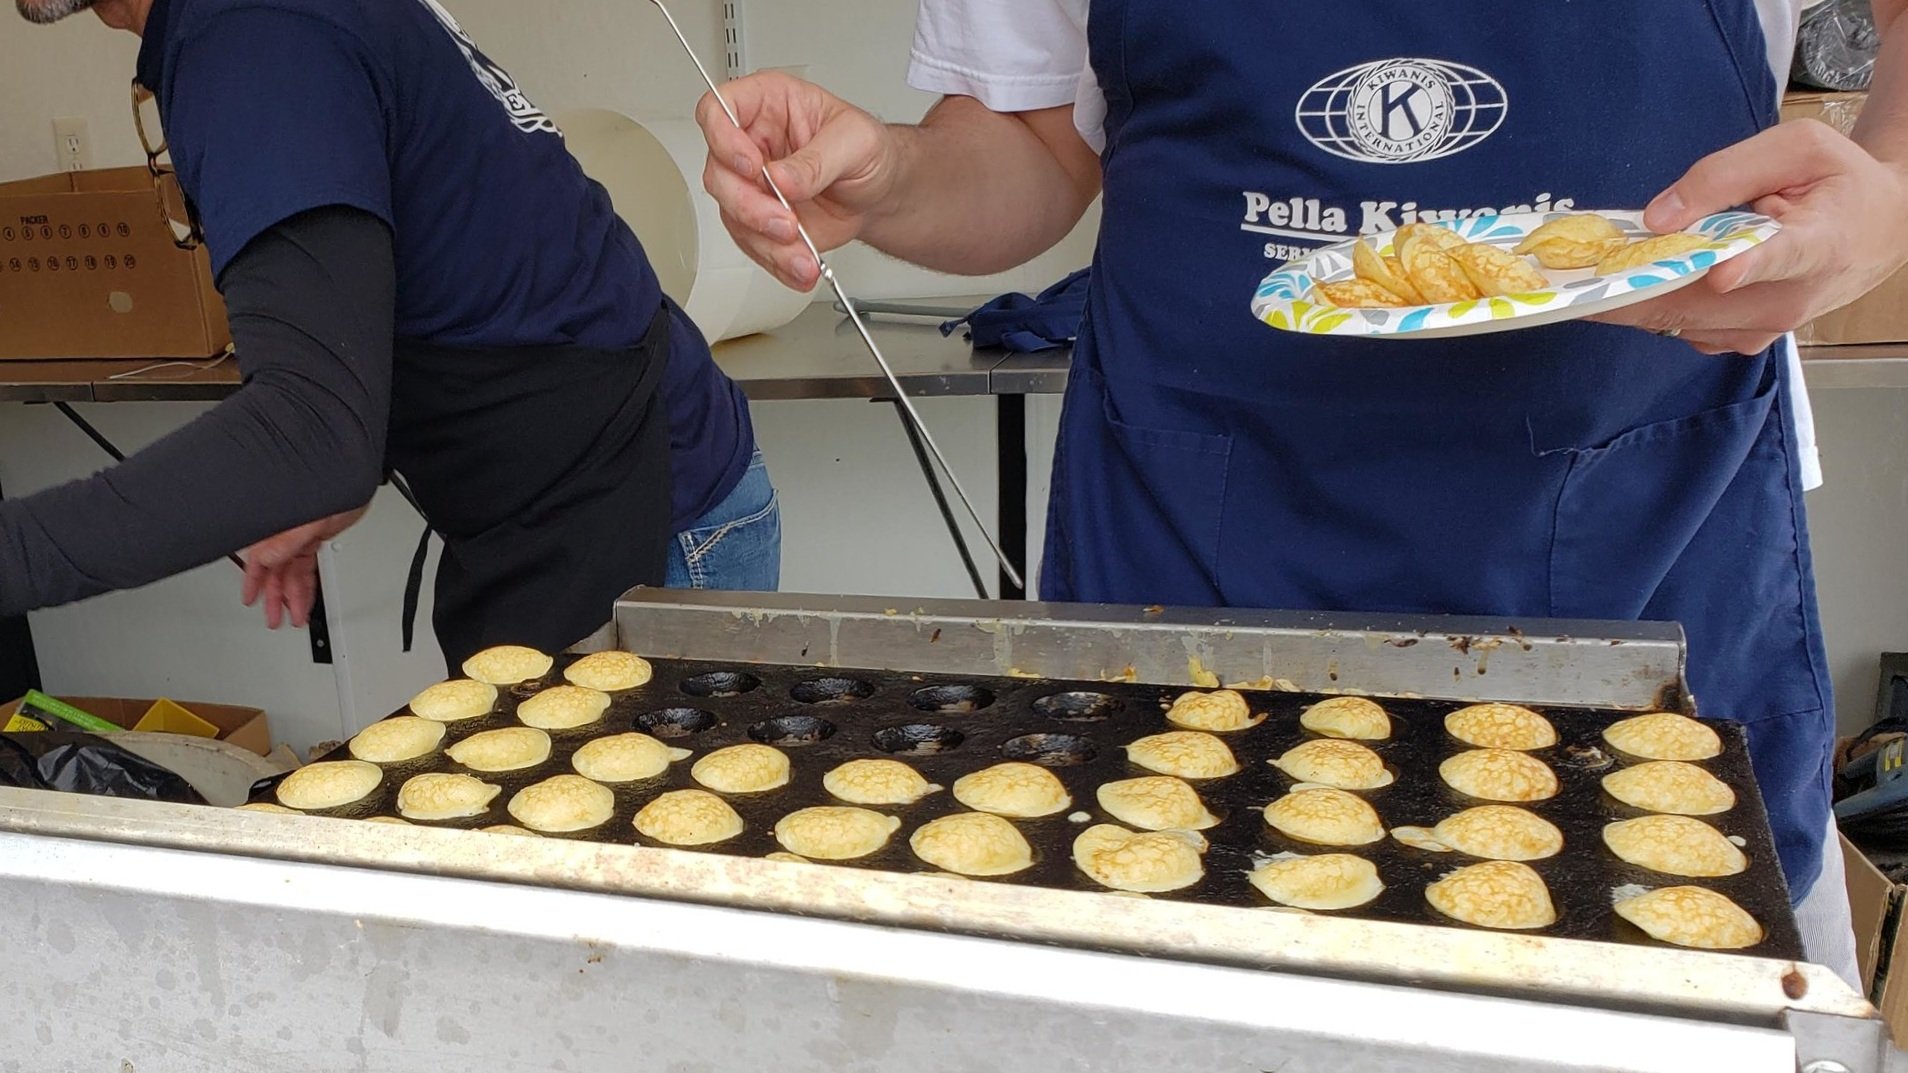 The griddle used to cook the puffs was custom built by a Pella manufacturer.